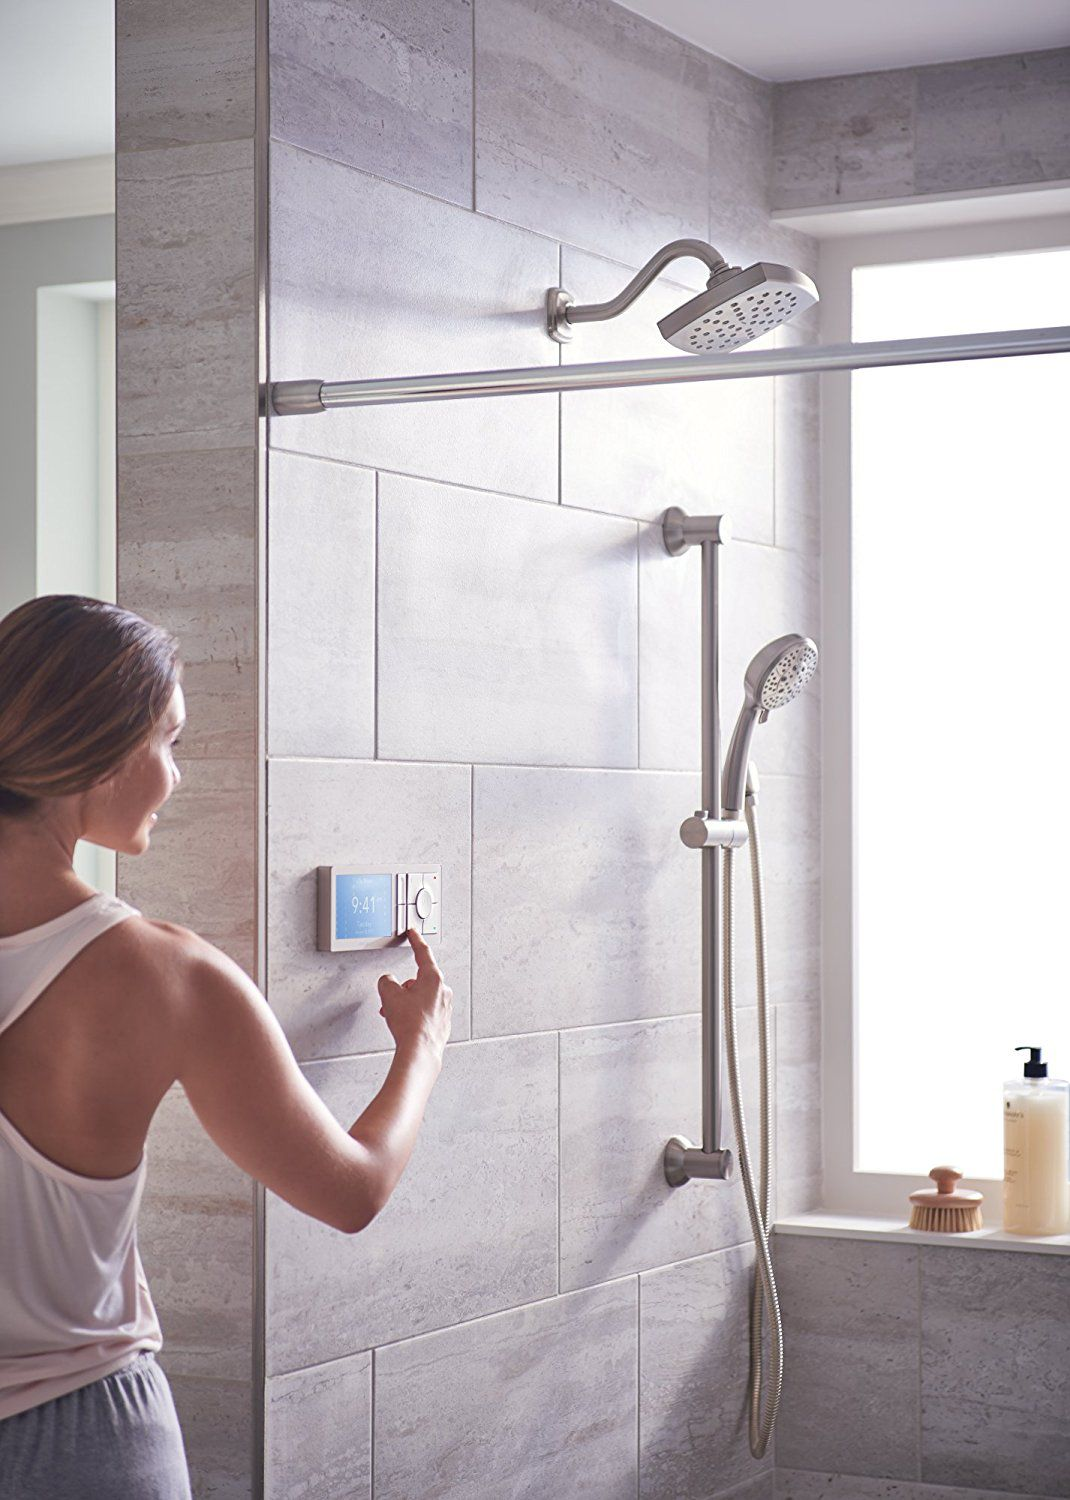 Moen U Shower Smart Home Connected Bathroom Controller